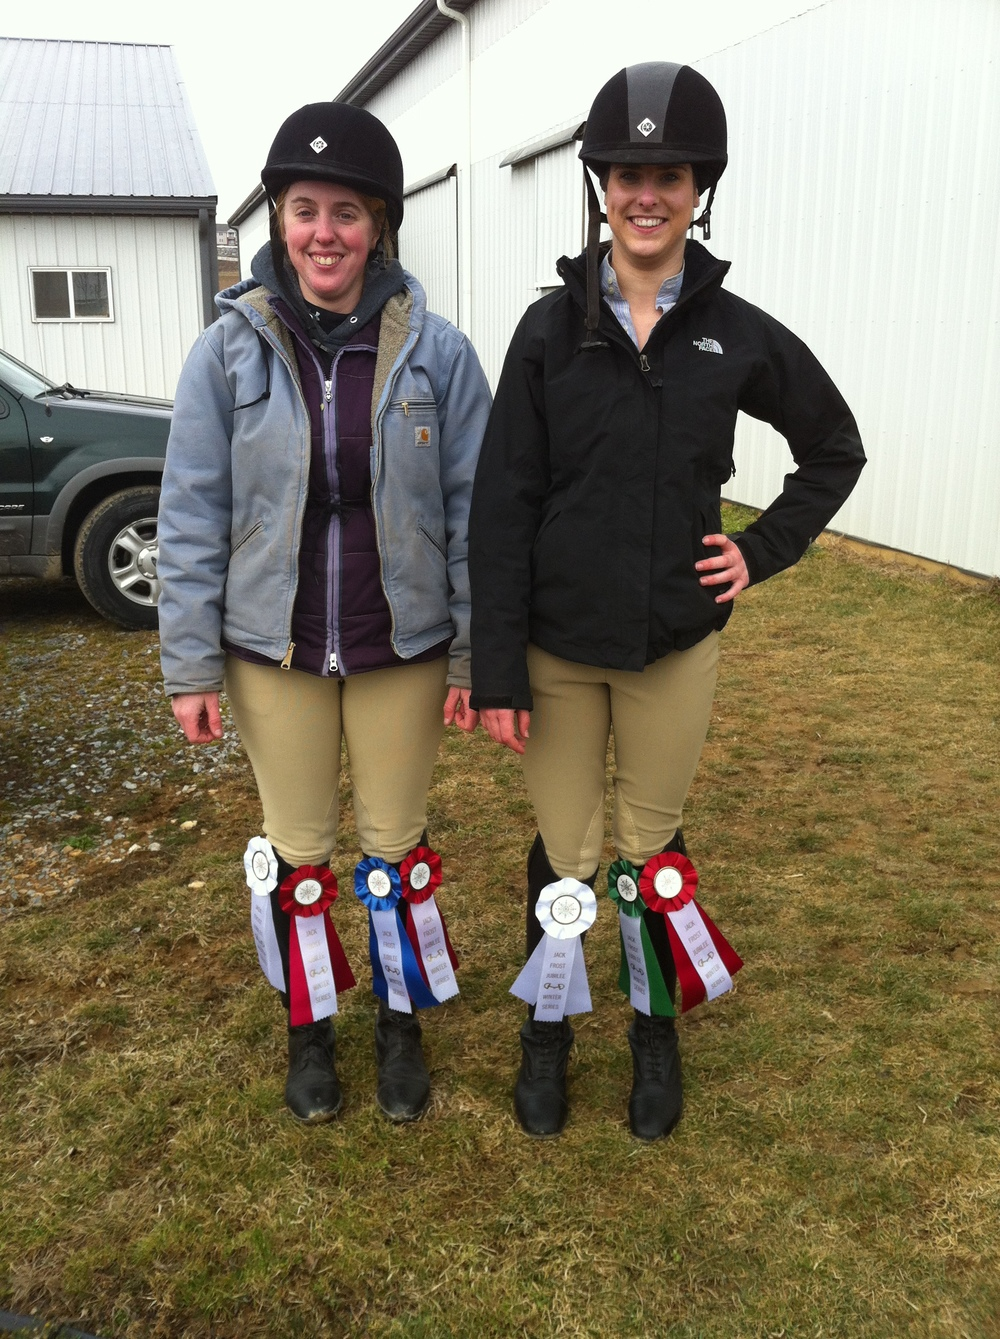 The girls with their jumping ribbons!